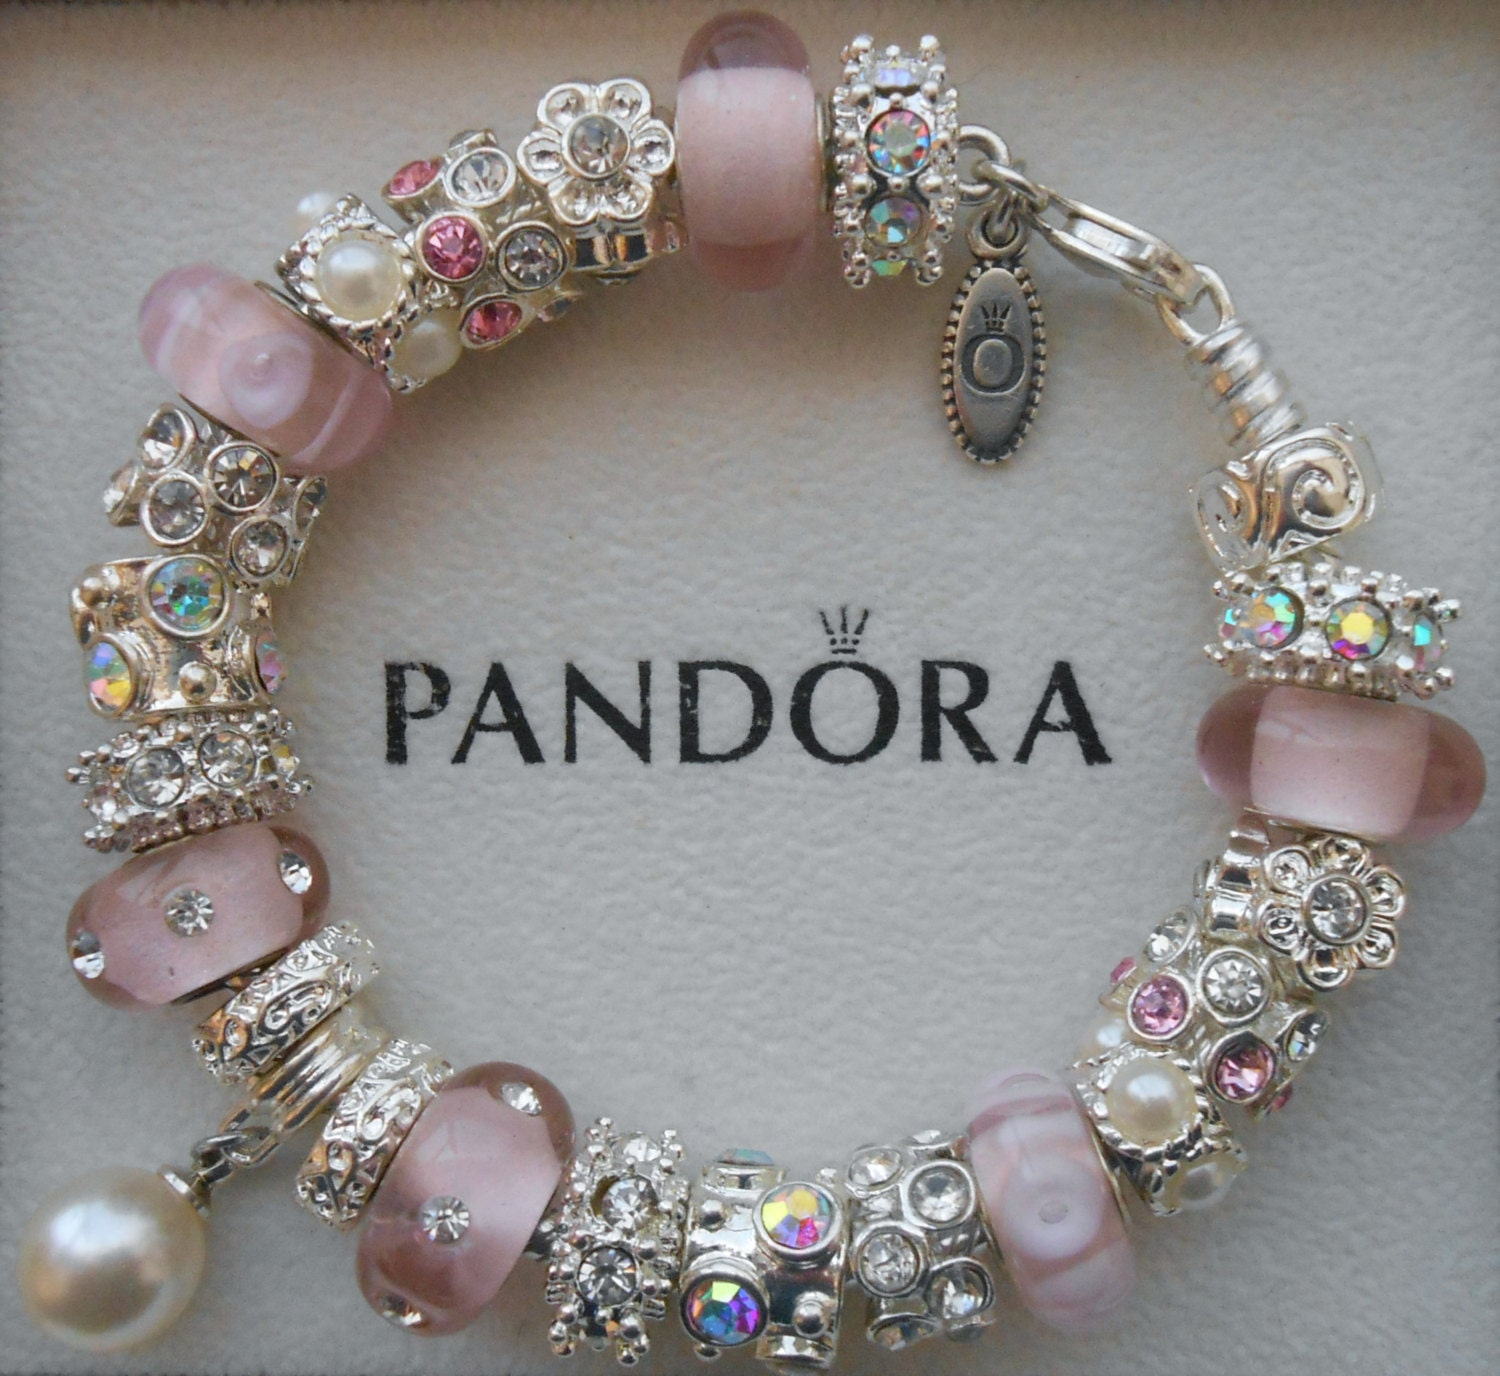 Charms For Bracelets Pandora: Authentic Pandora Bracelet OR Non-branded European Charm